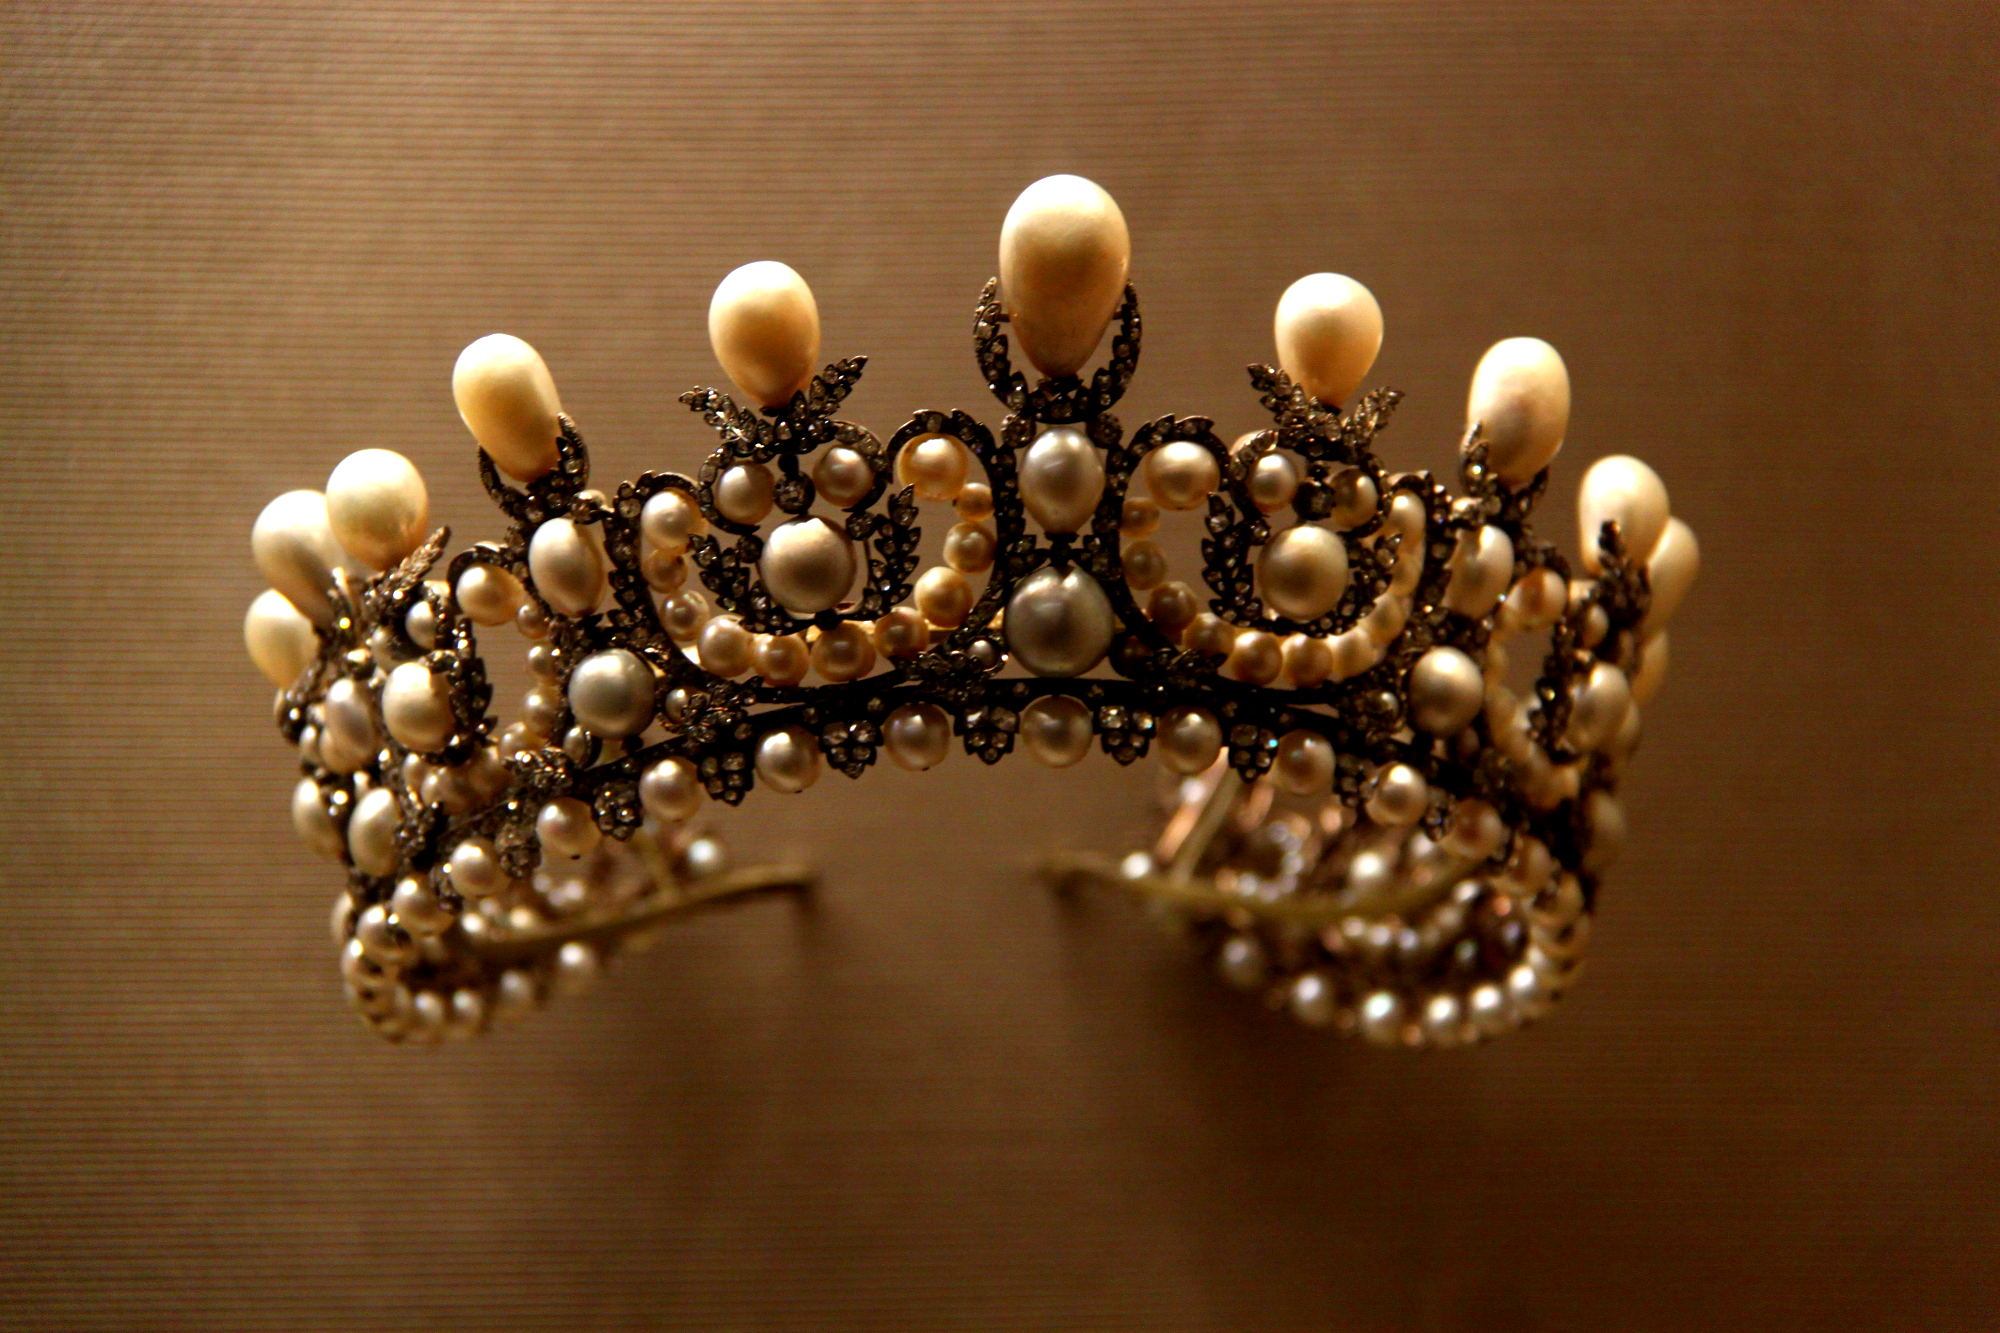 Princesses' Jewelries exhibited at the Louvre Museum